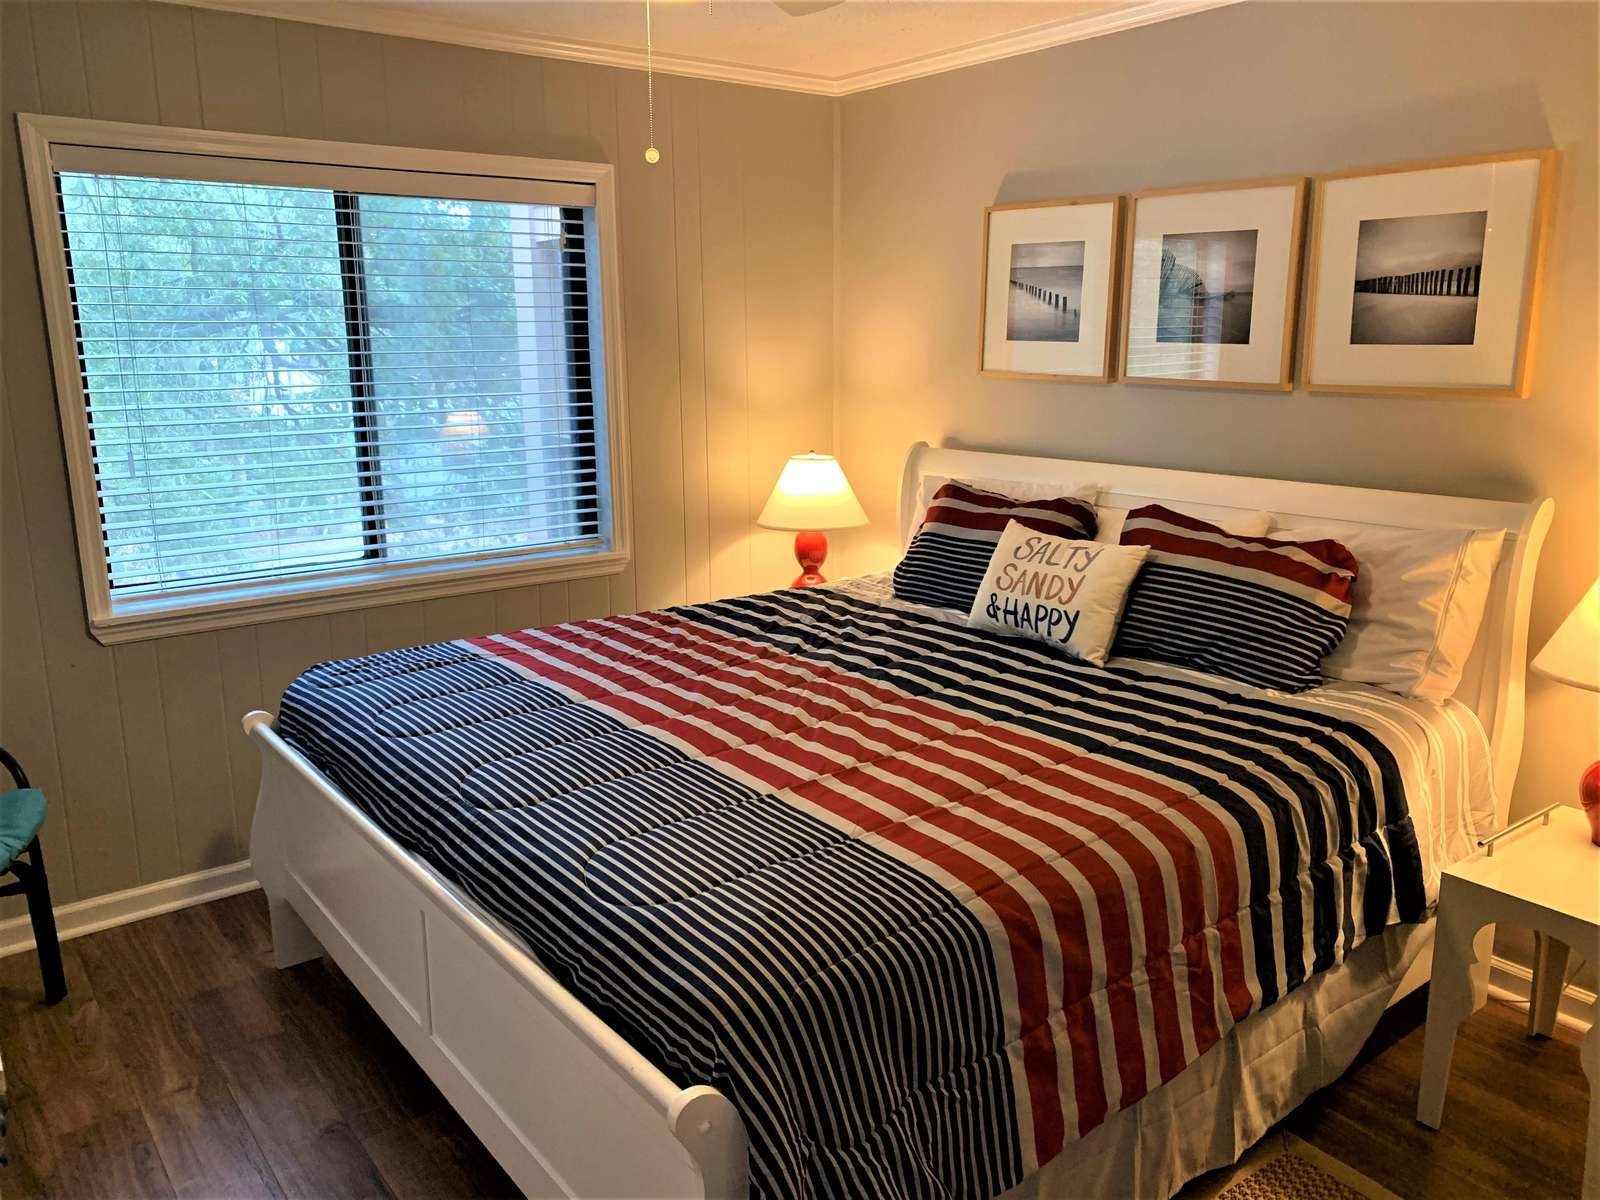 New King size Bed in Master